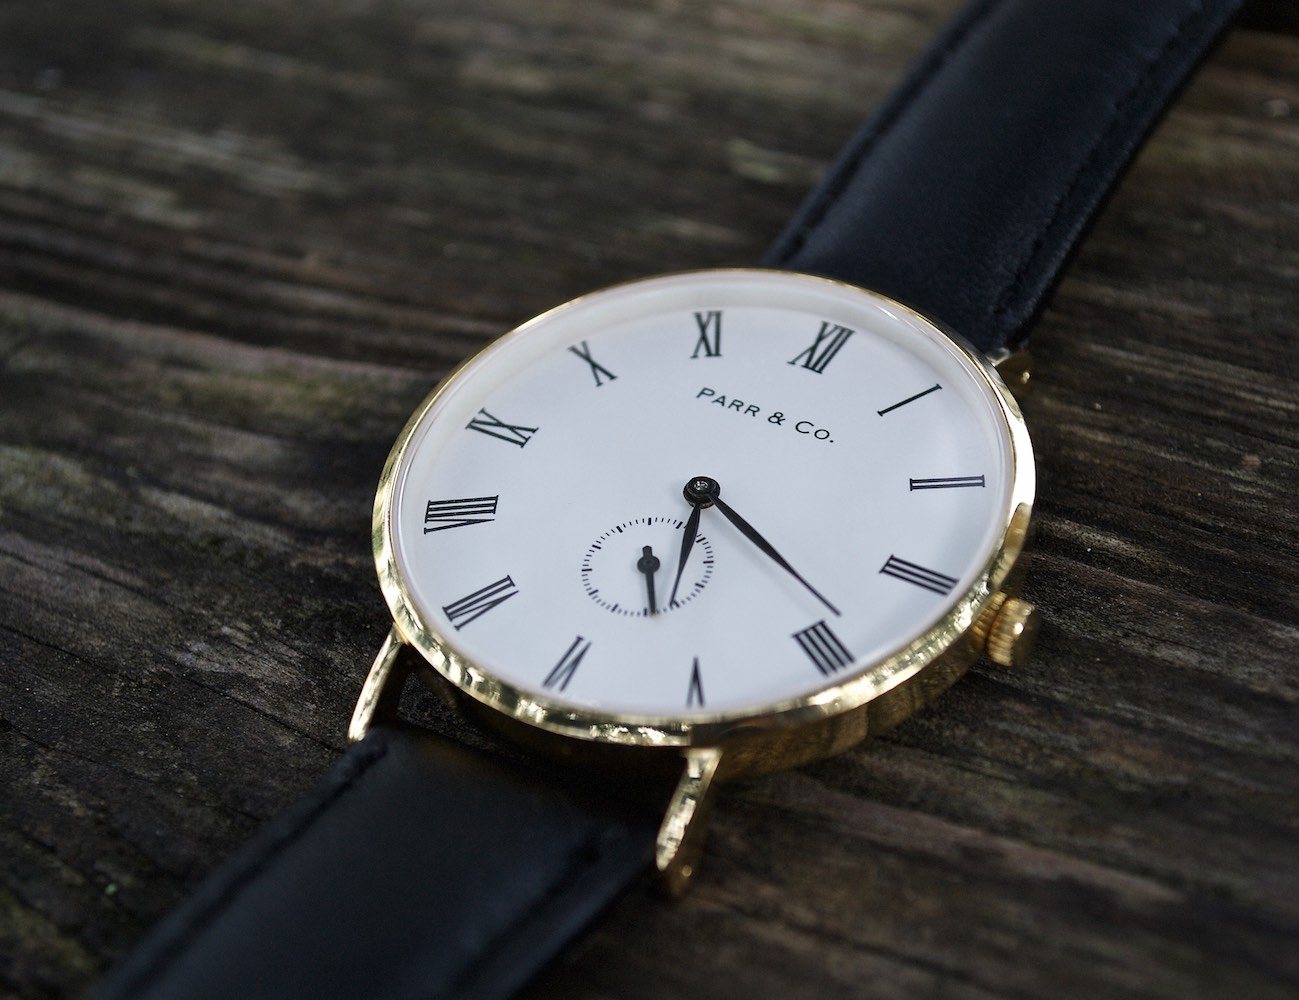 Parr co watches for every occasion gadget flow for Watches for men